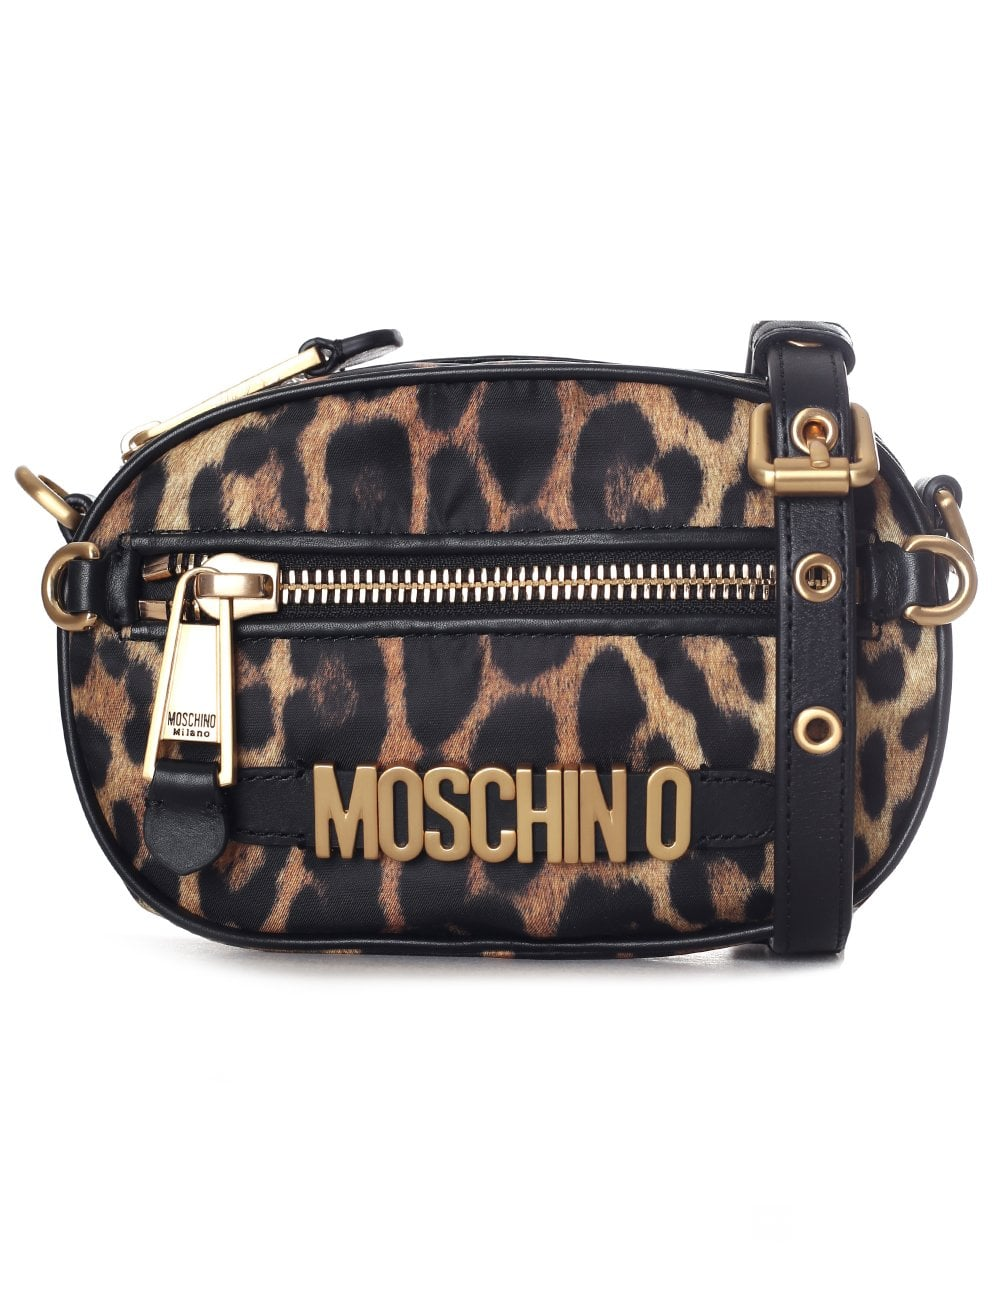 b15a6f55e0e Moschino Couture Women's Leopard Shoulder Bag